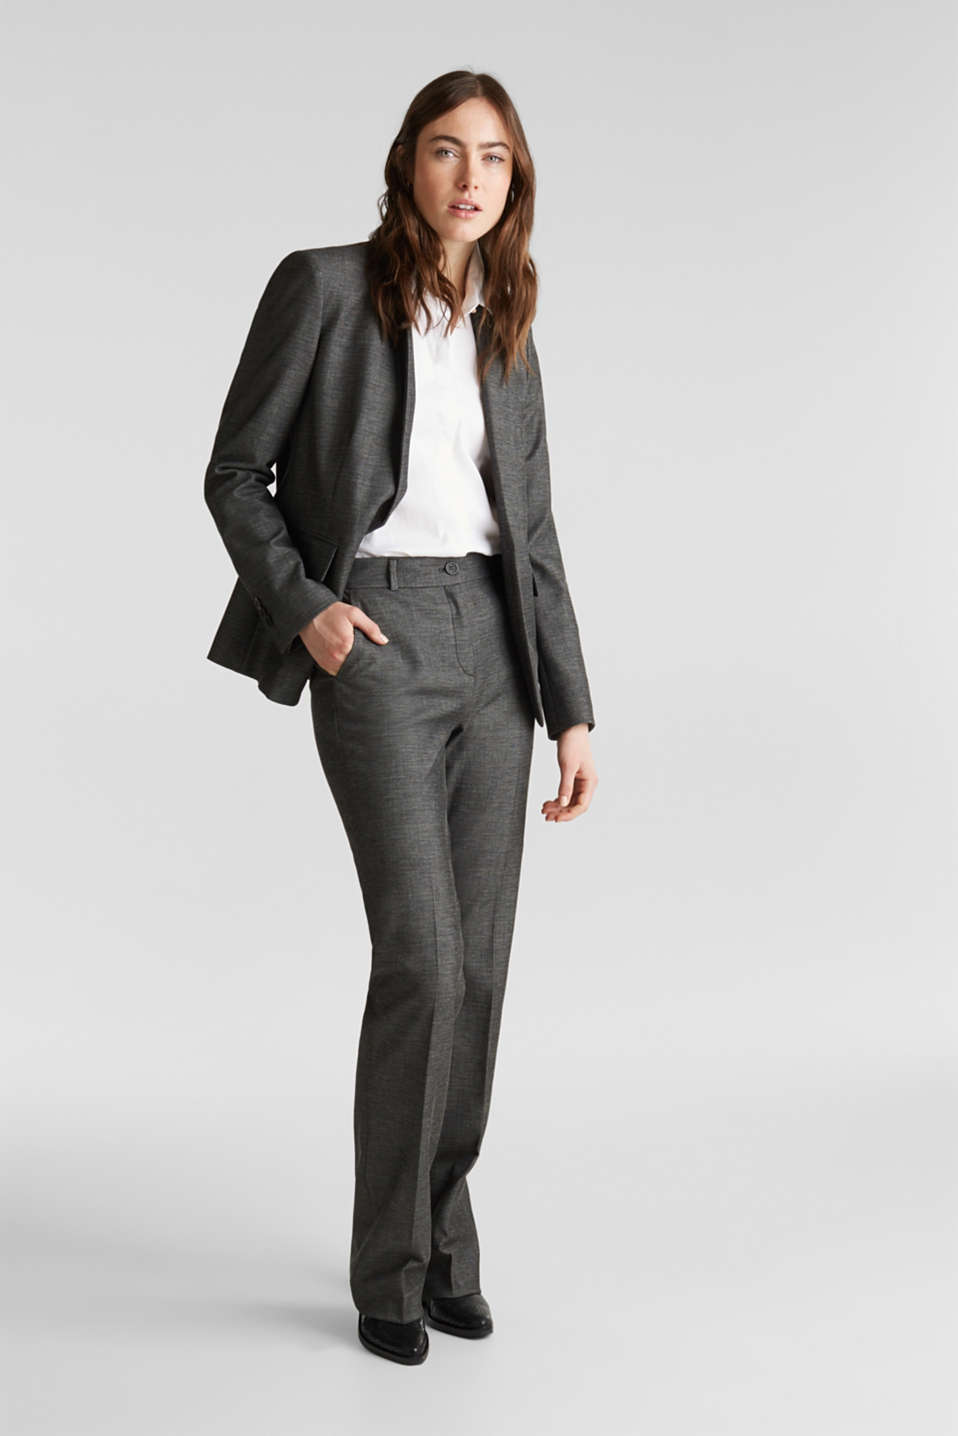 SHINY TEXTURE mix + match stretch trousers, DARK GREY 5, detail